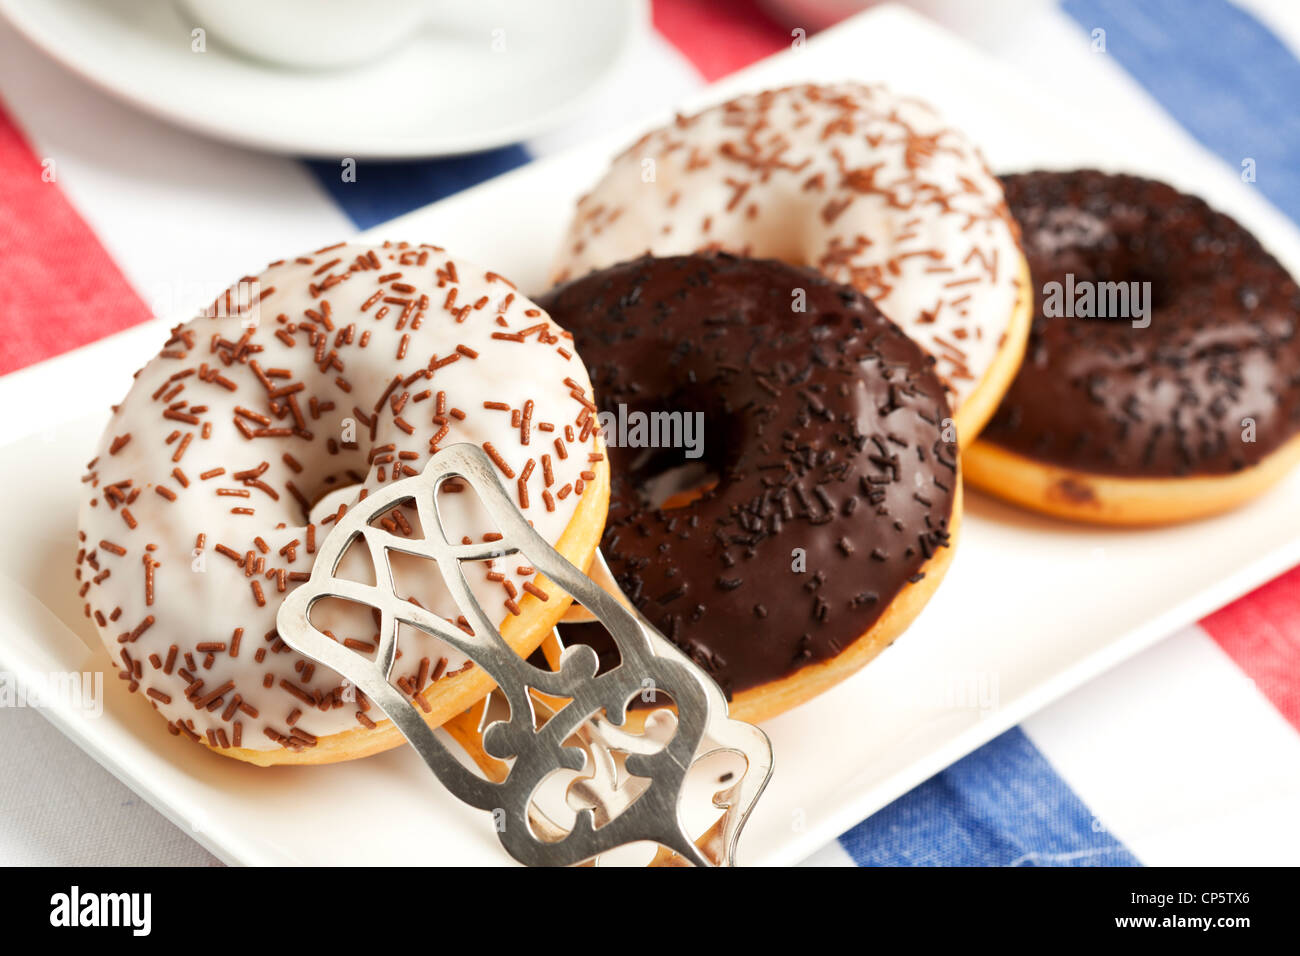 Donuts with dark and white chocolate icing and sprinkles on serving plate with pastry tongs - Stock Image